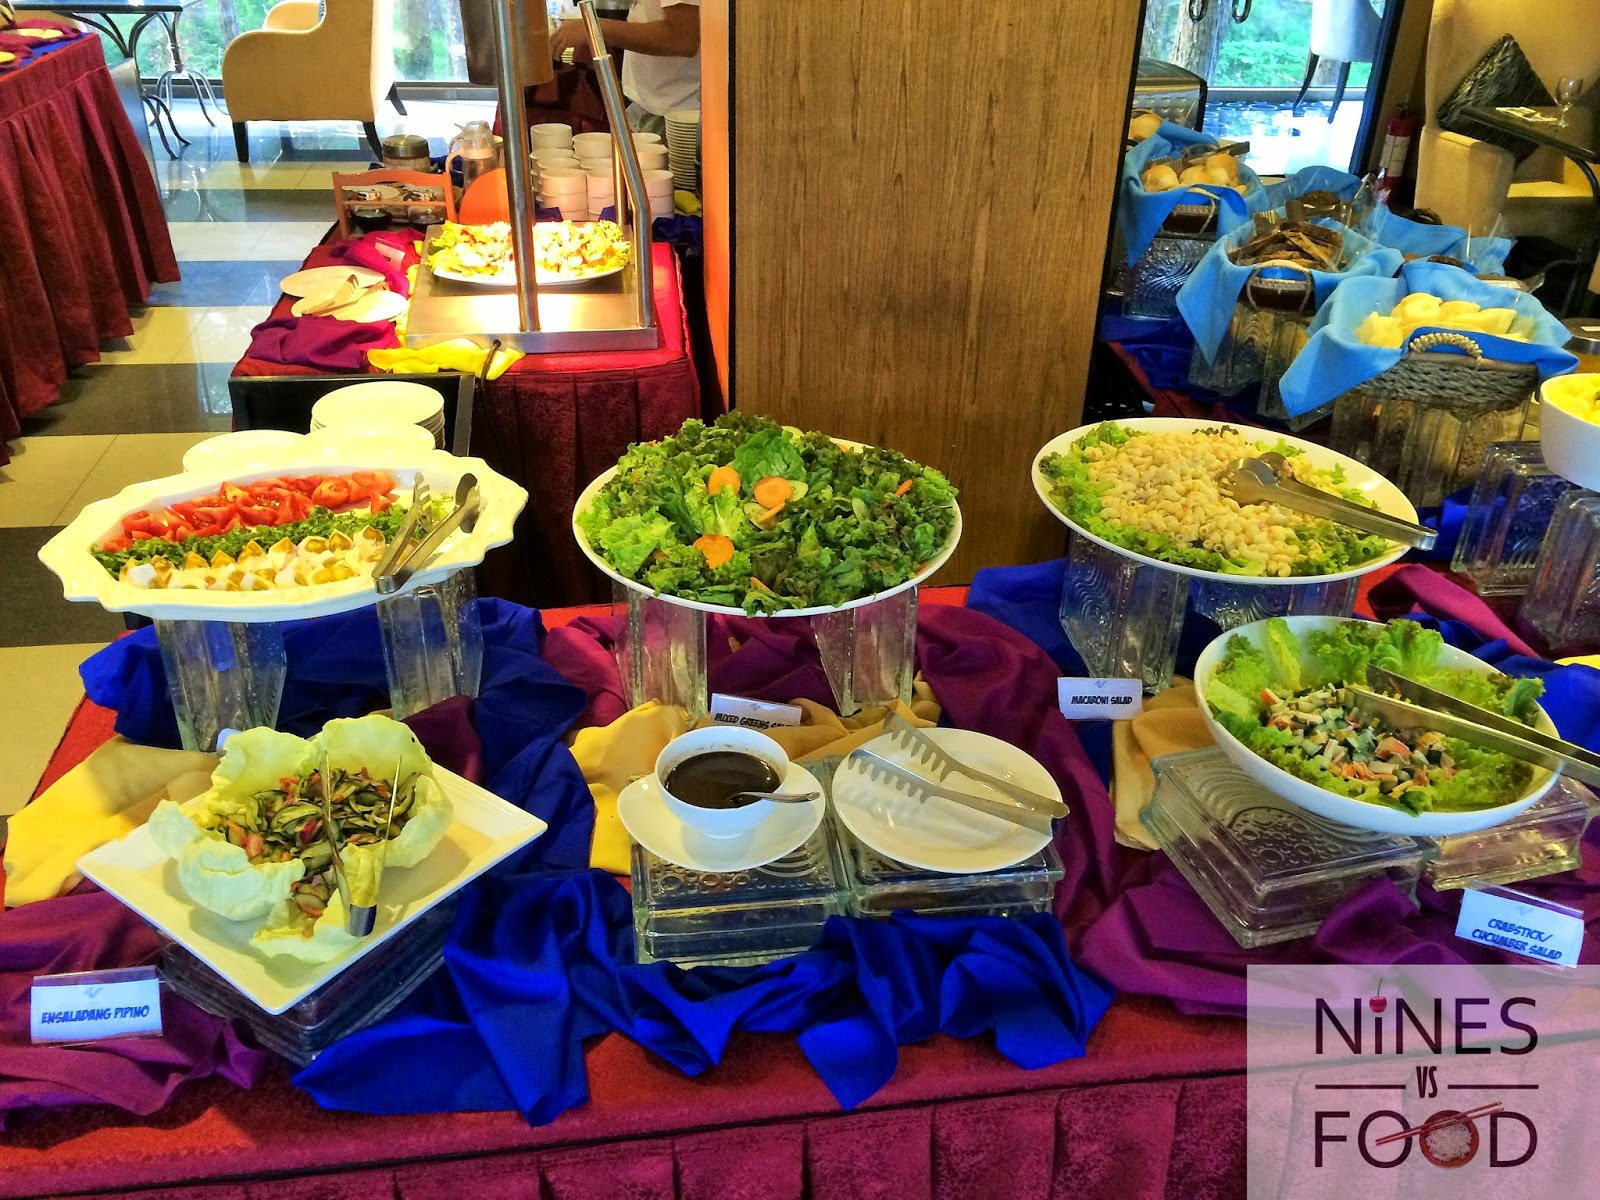 Nines vs. Food - Dinelli Gourmet Le Monet Hotel Baguio Breakfast Buffet-4.jpg